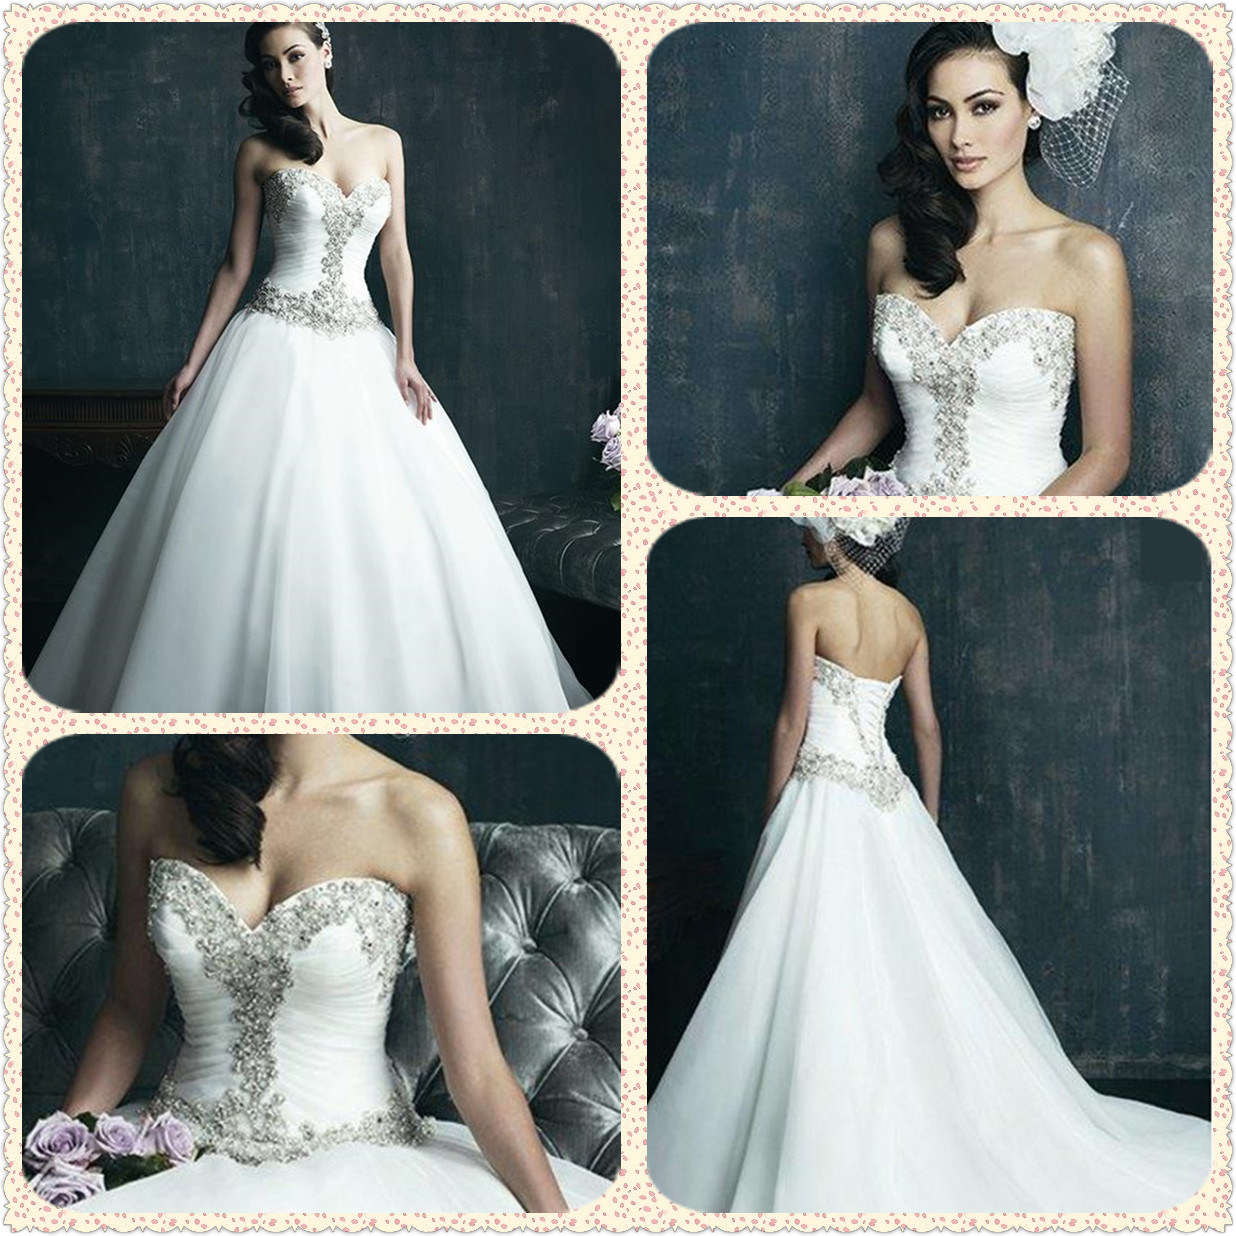 China Western Strapless Corset Bridal Ball Gown Wedding Dress (Dream ...